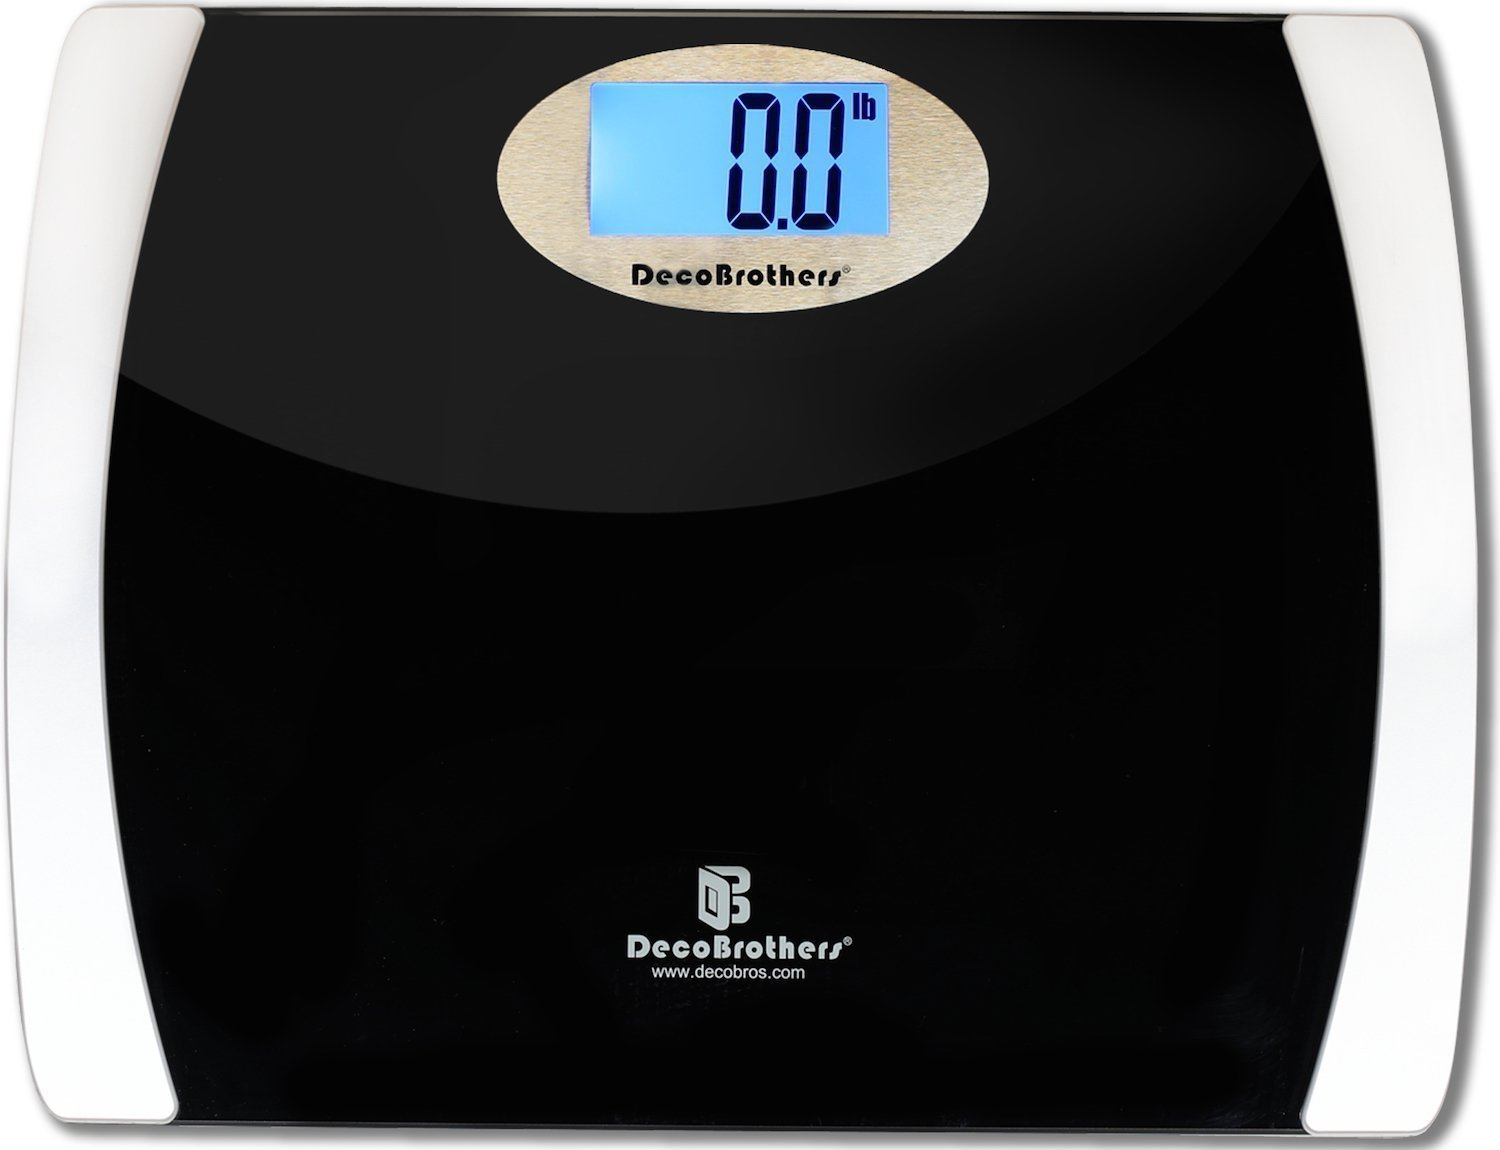 DecoBros 400lb Wide Platform Digital Bathroom Body Weight Scale with Large LCD Display, Step-On Startup